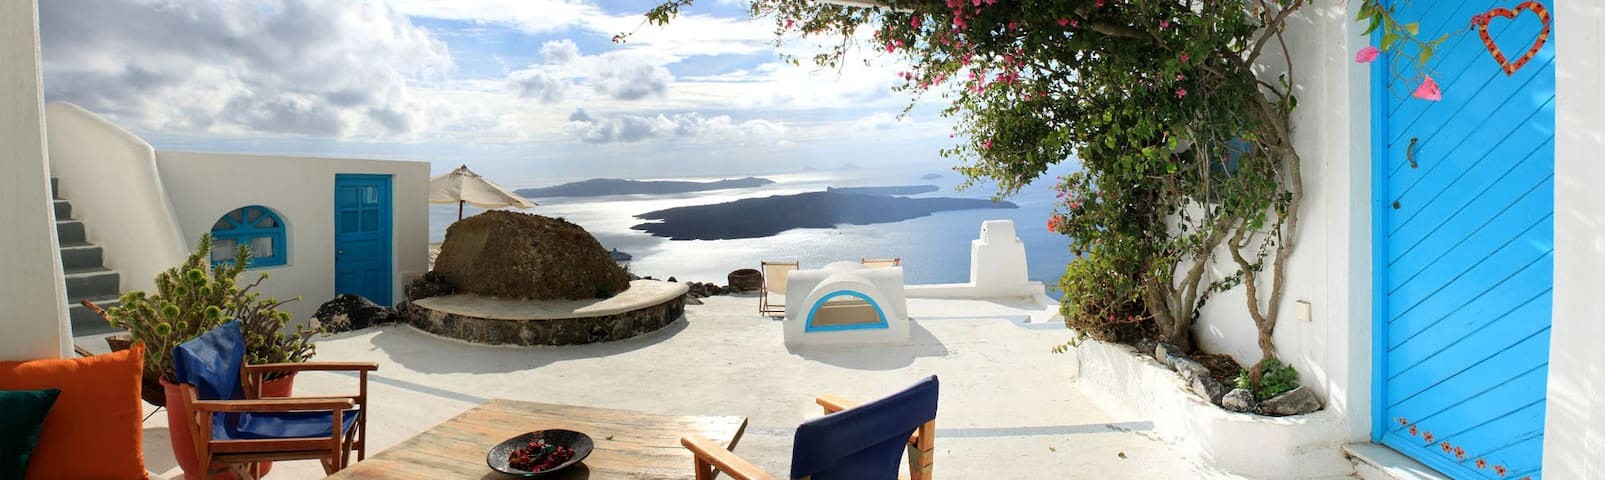 Traditional,Good view,Location!!! - Thira - Huis